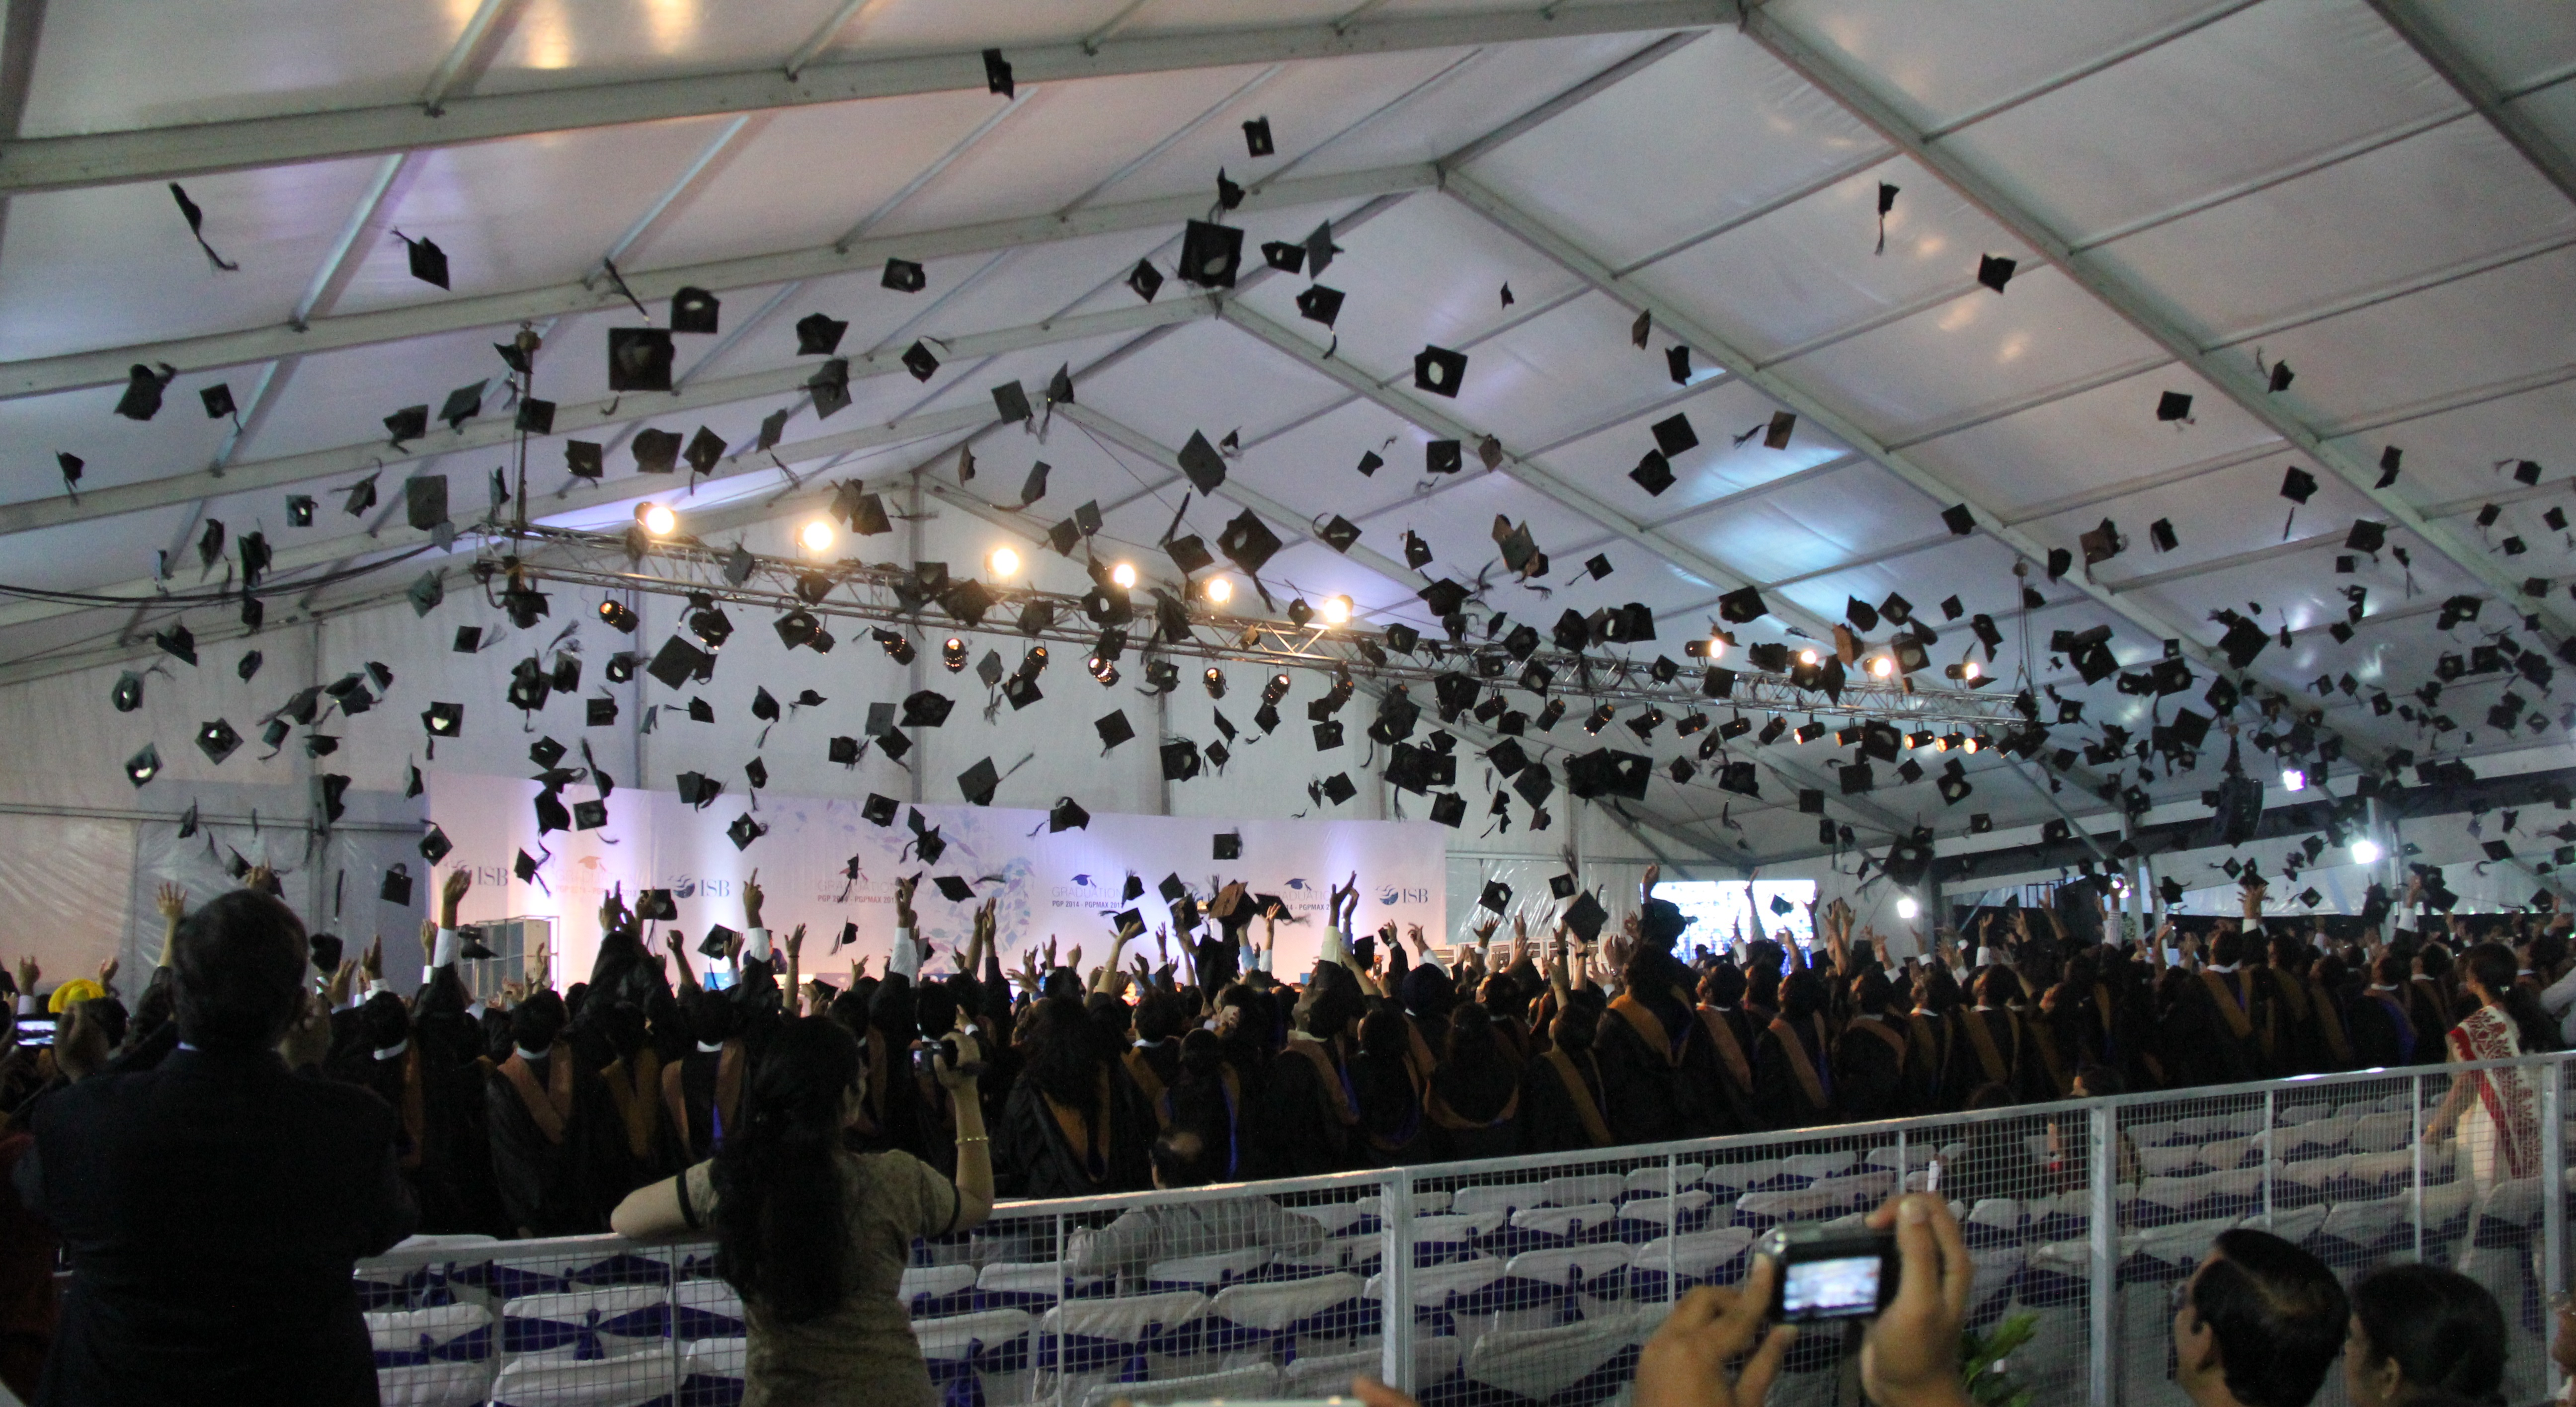 Square_academic_cap_(graduation_hats)